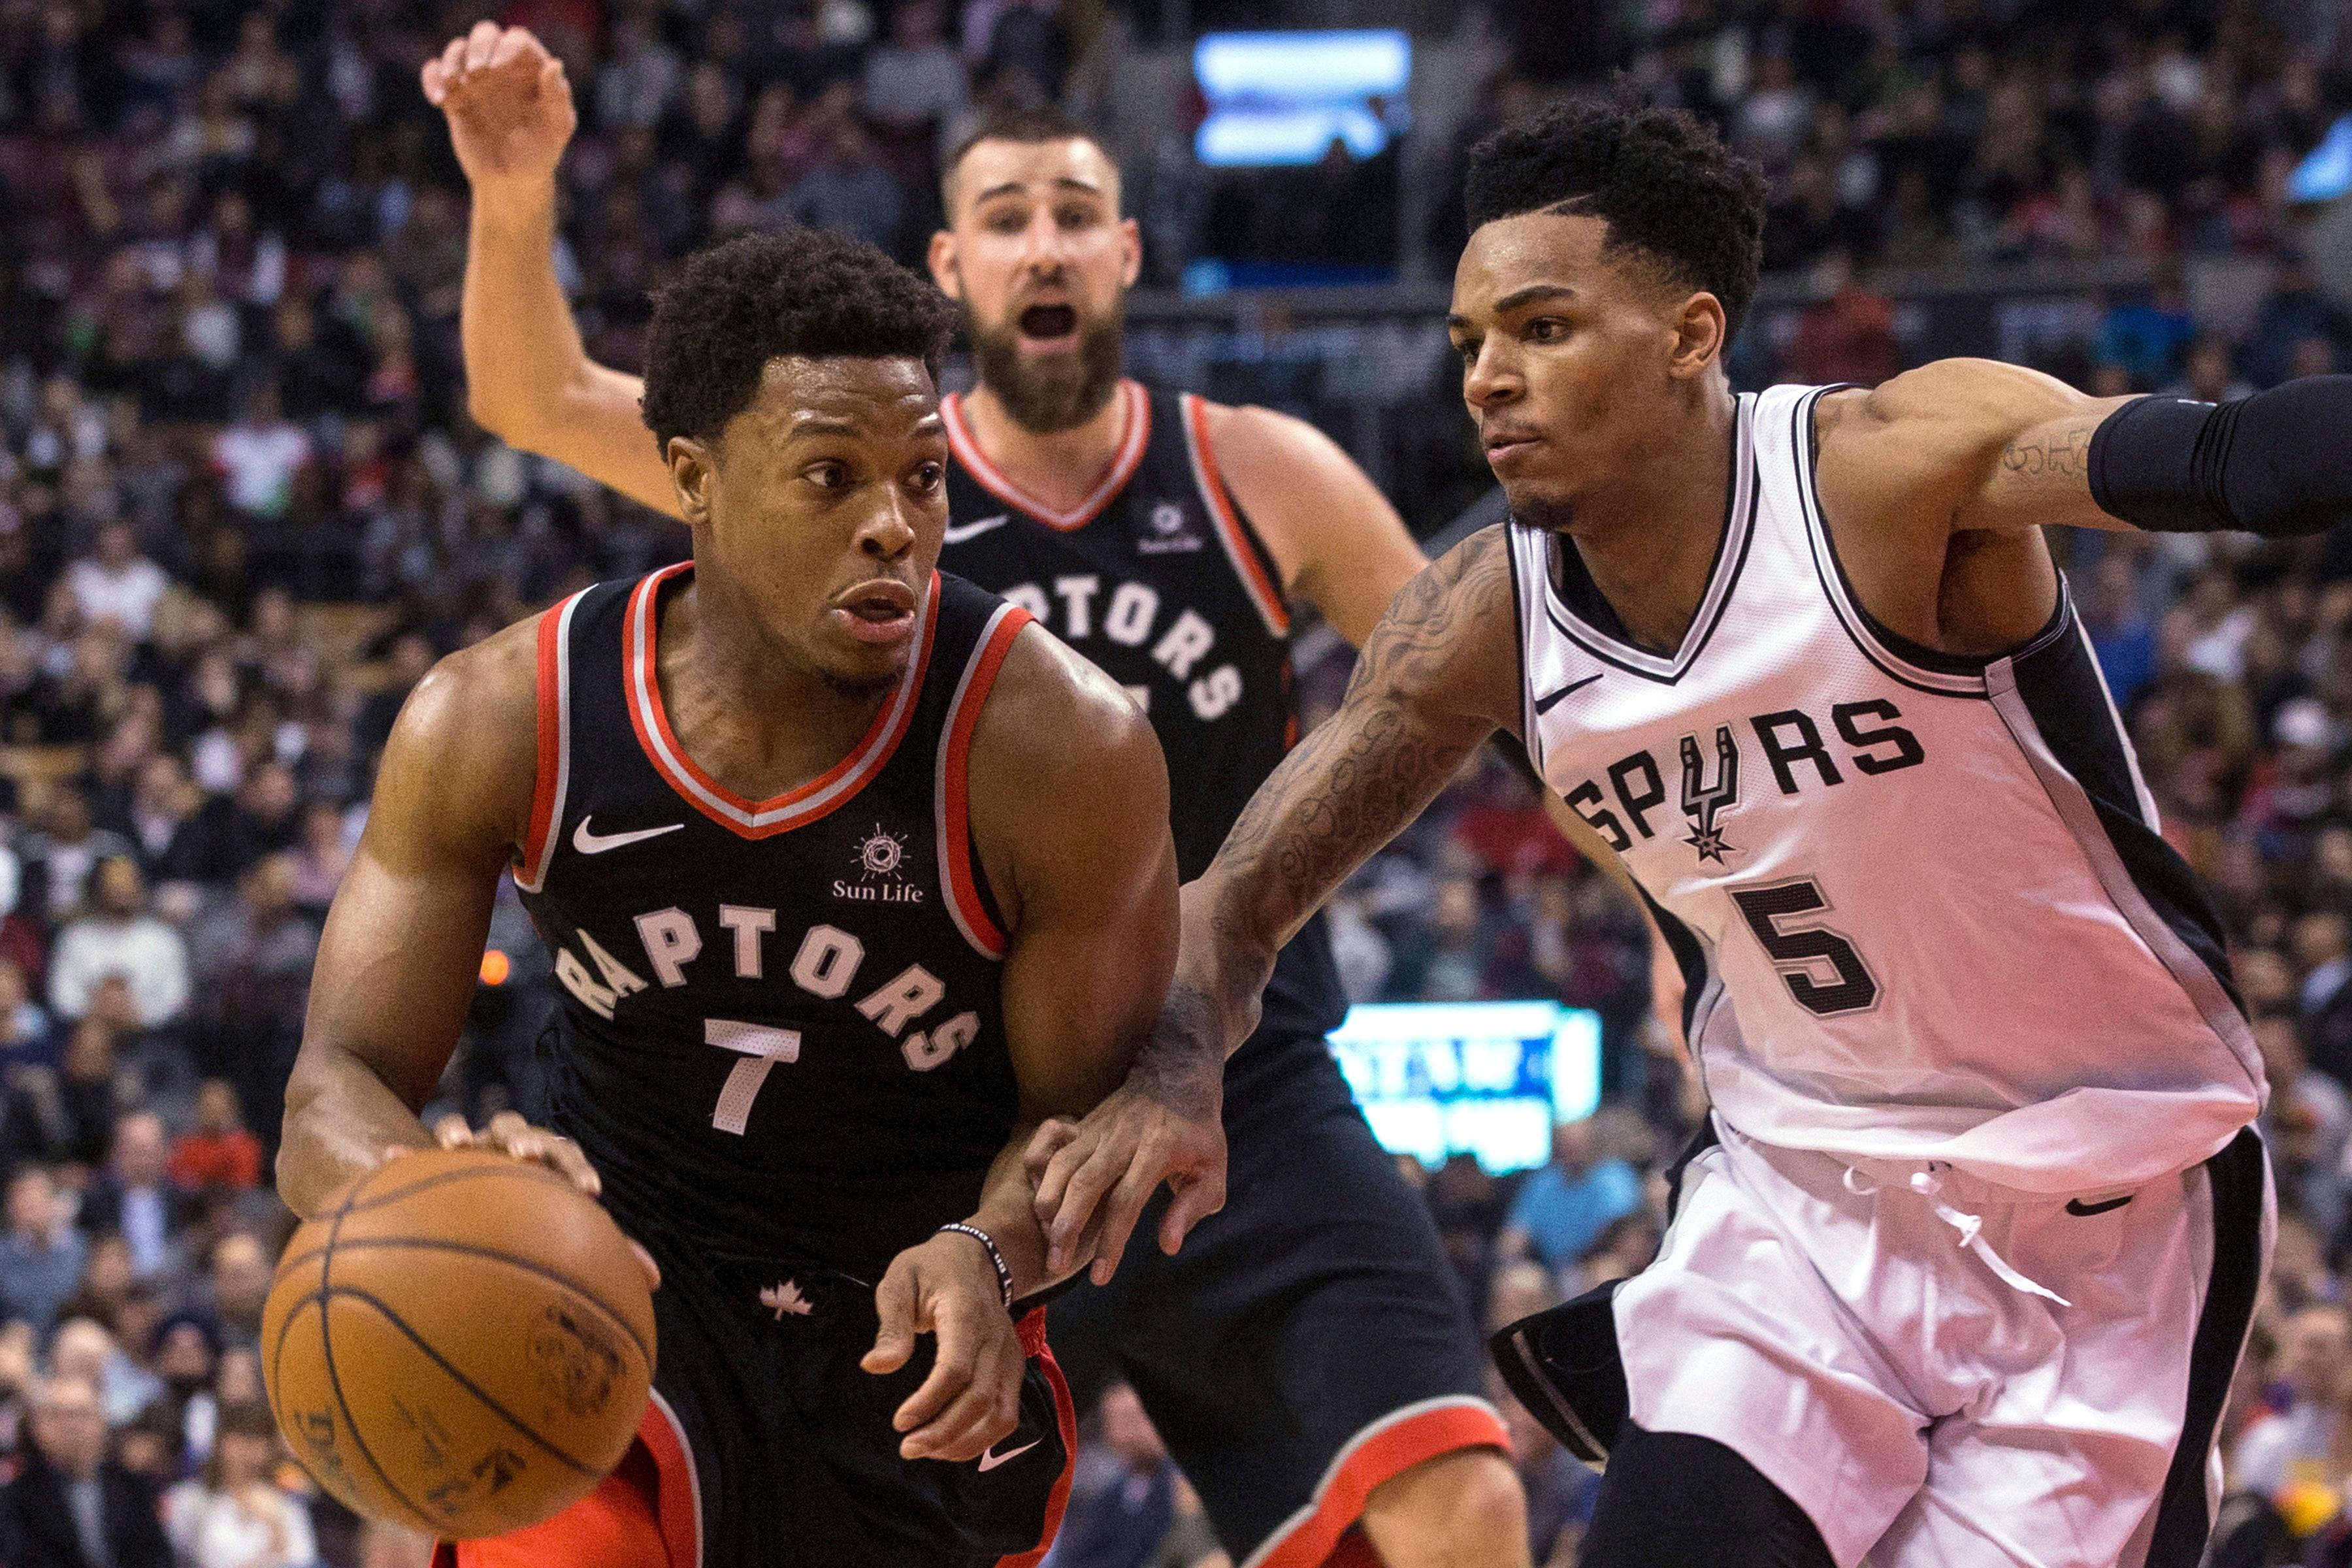 Toronto Raptors guard Kyle Lowry (7) drives on San Antonio Spurs guard Dejounte Murray (5) during the second half of an NBA basketball game Friday, Jan. 19, 2018, in Toronto. (Chris Young/The Canadian Press via AP)